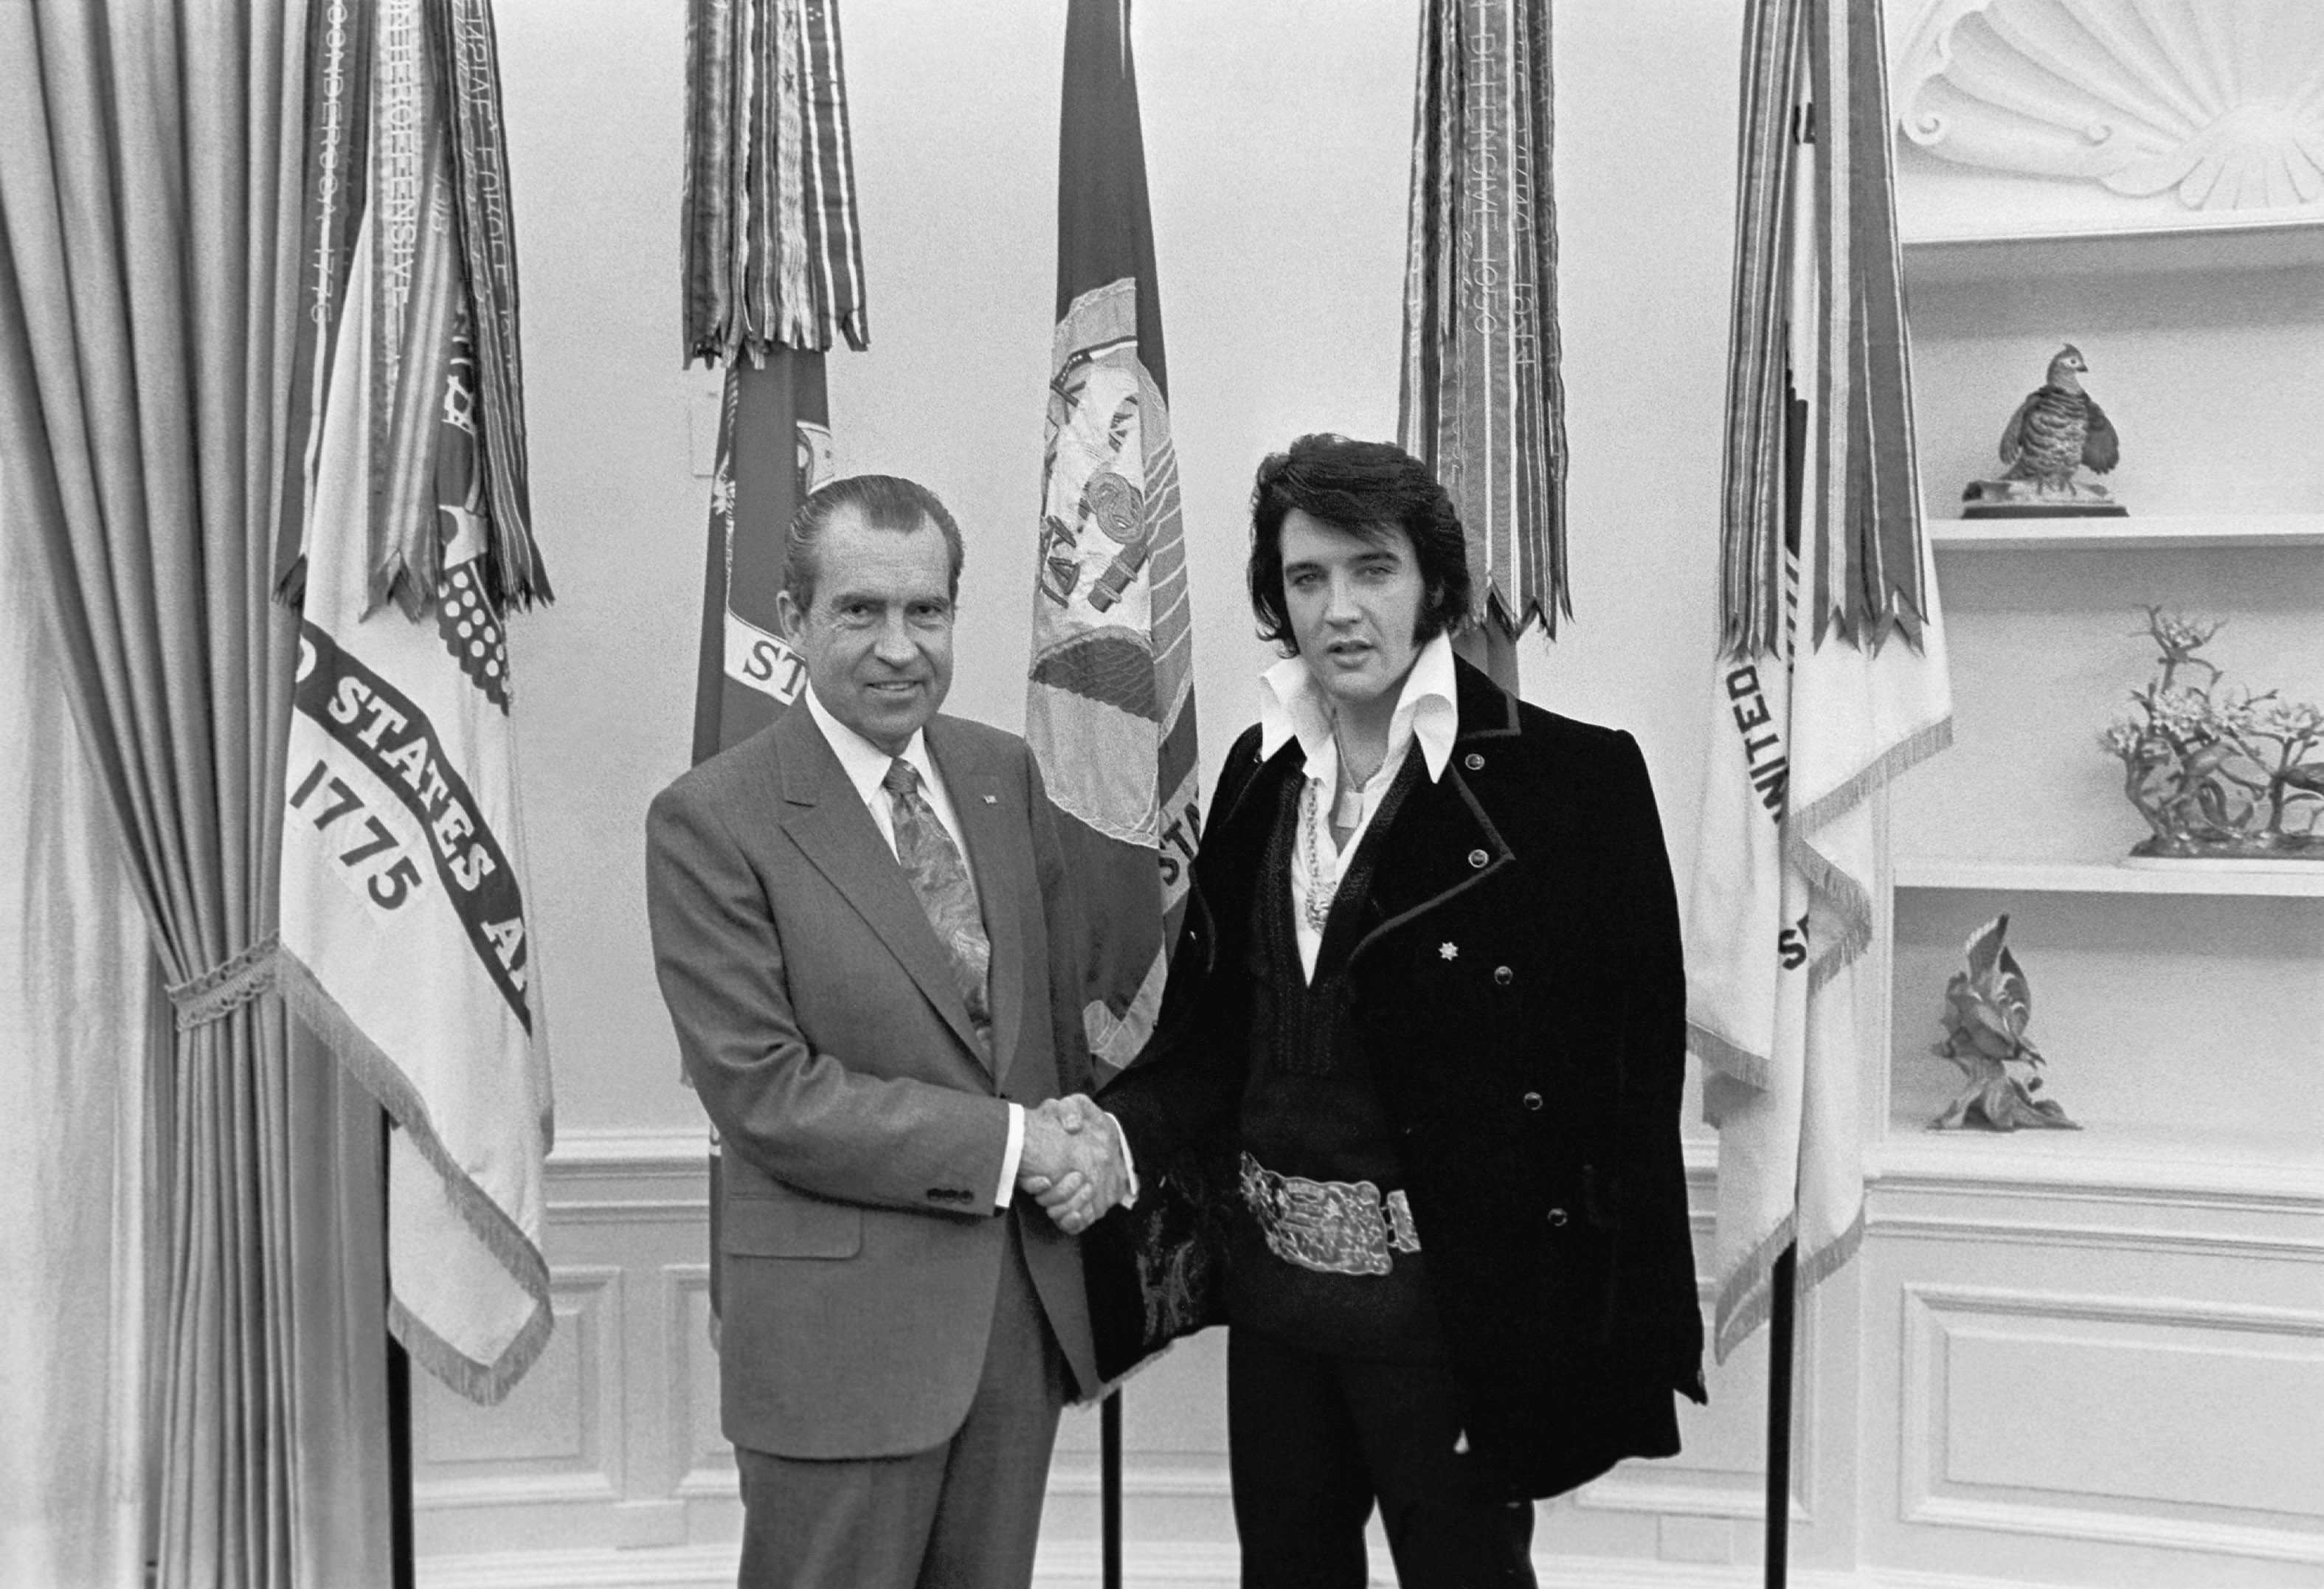 Elvis Presley meeting Richard Nixon, December 21, 1970.